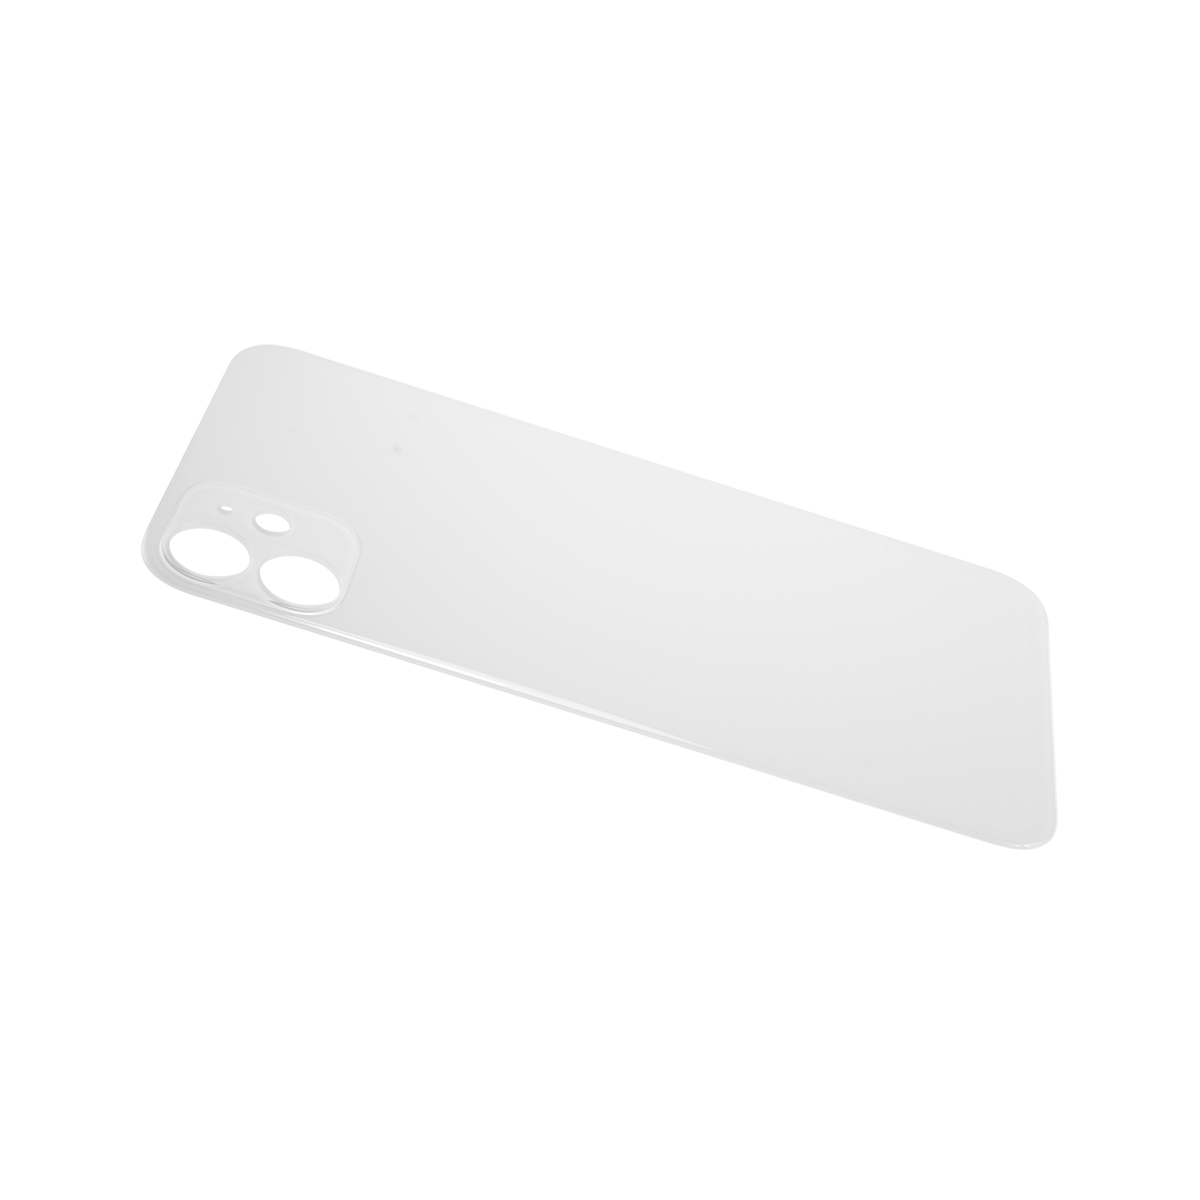 iPhone_11_Back_glass_with_big_hole_side_white_SBAEDTZGOGPY.png